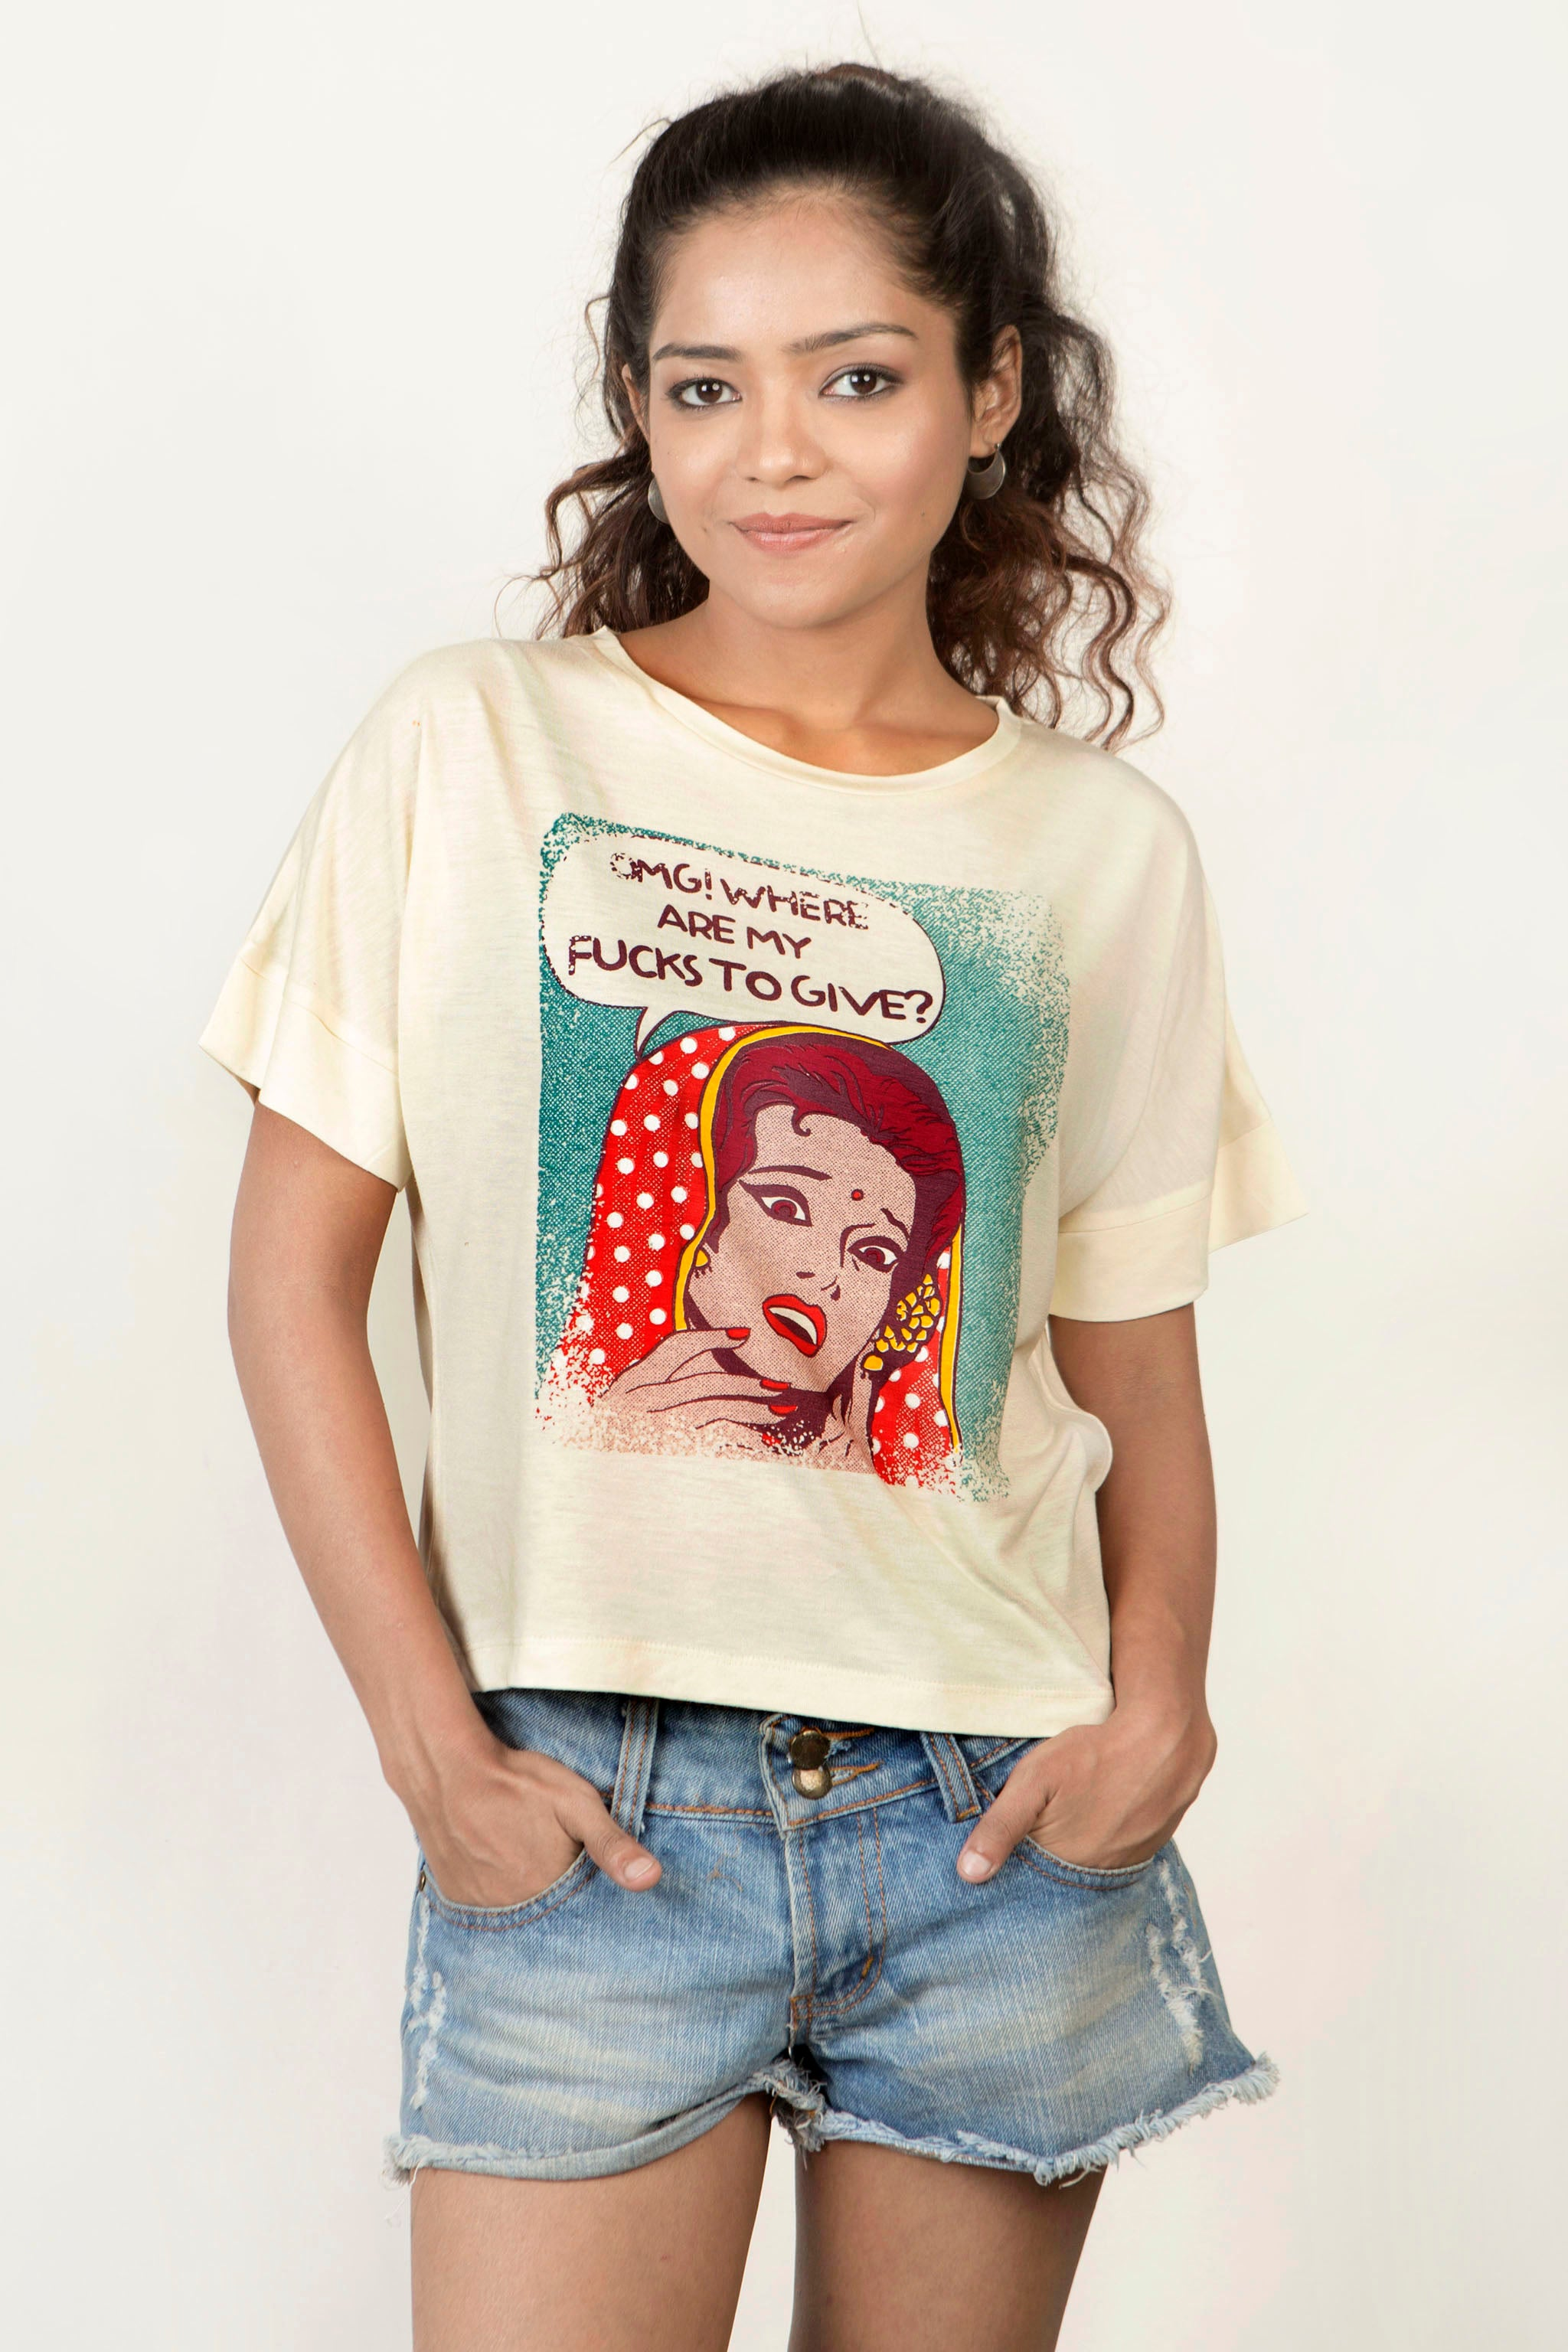 Buy OMG! Where are my fucks to give? Women's T-Shirt Online In India